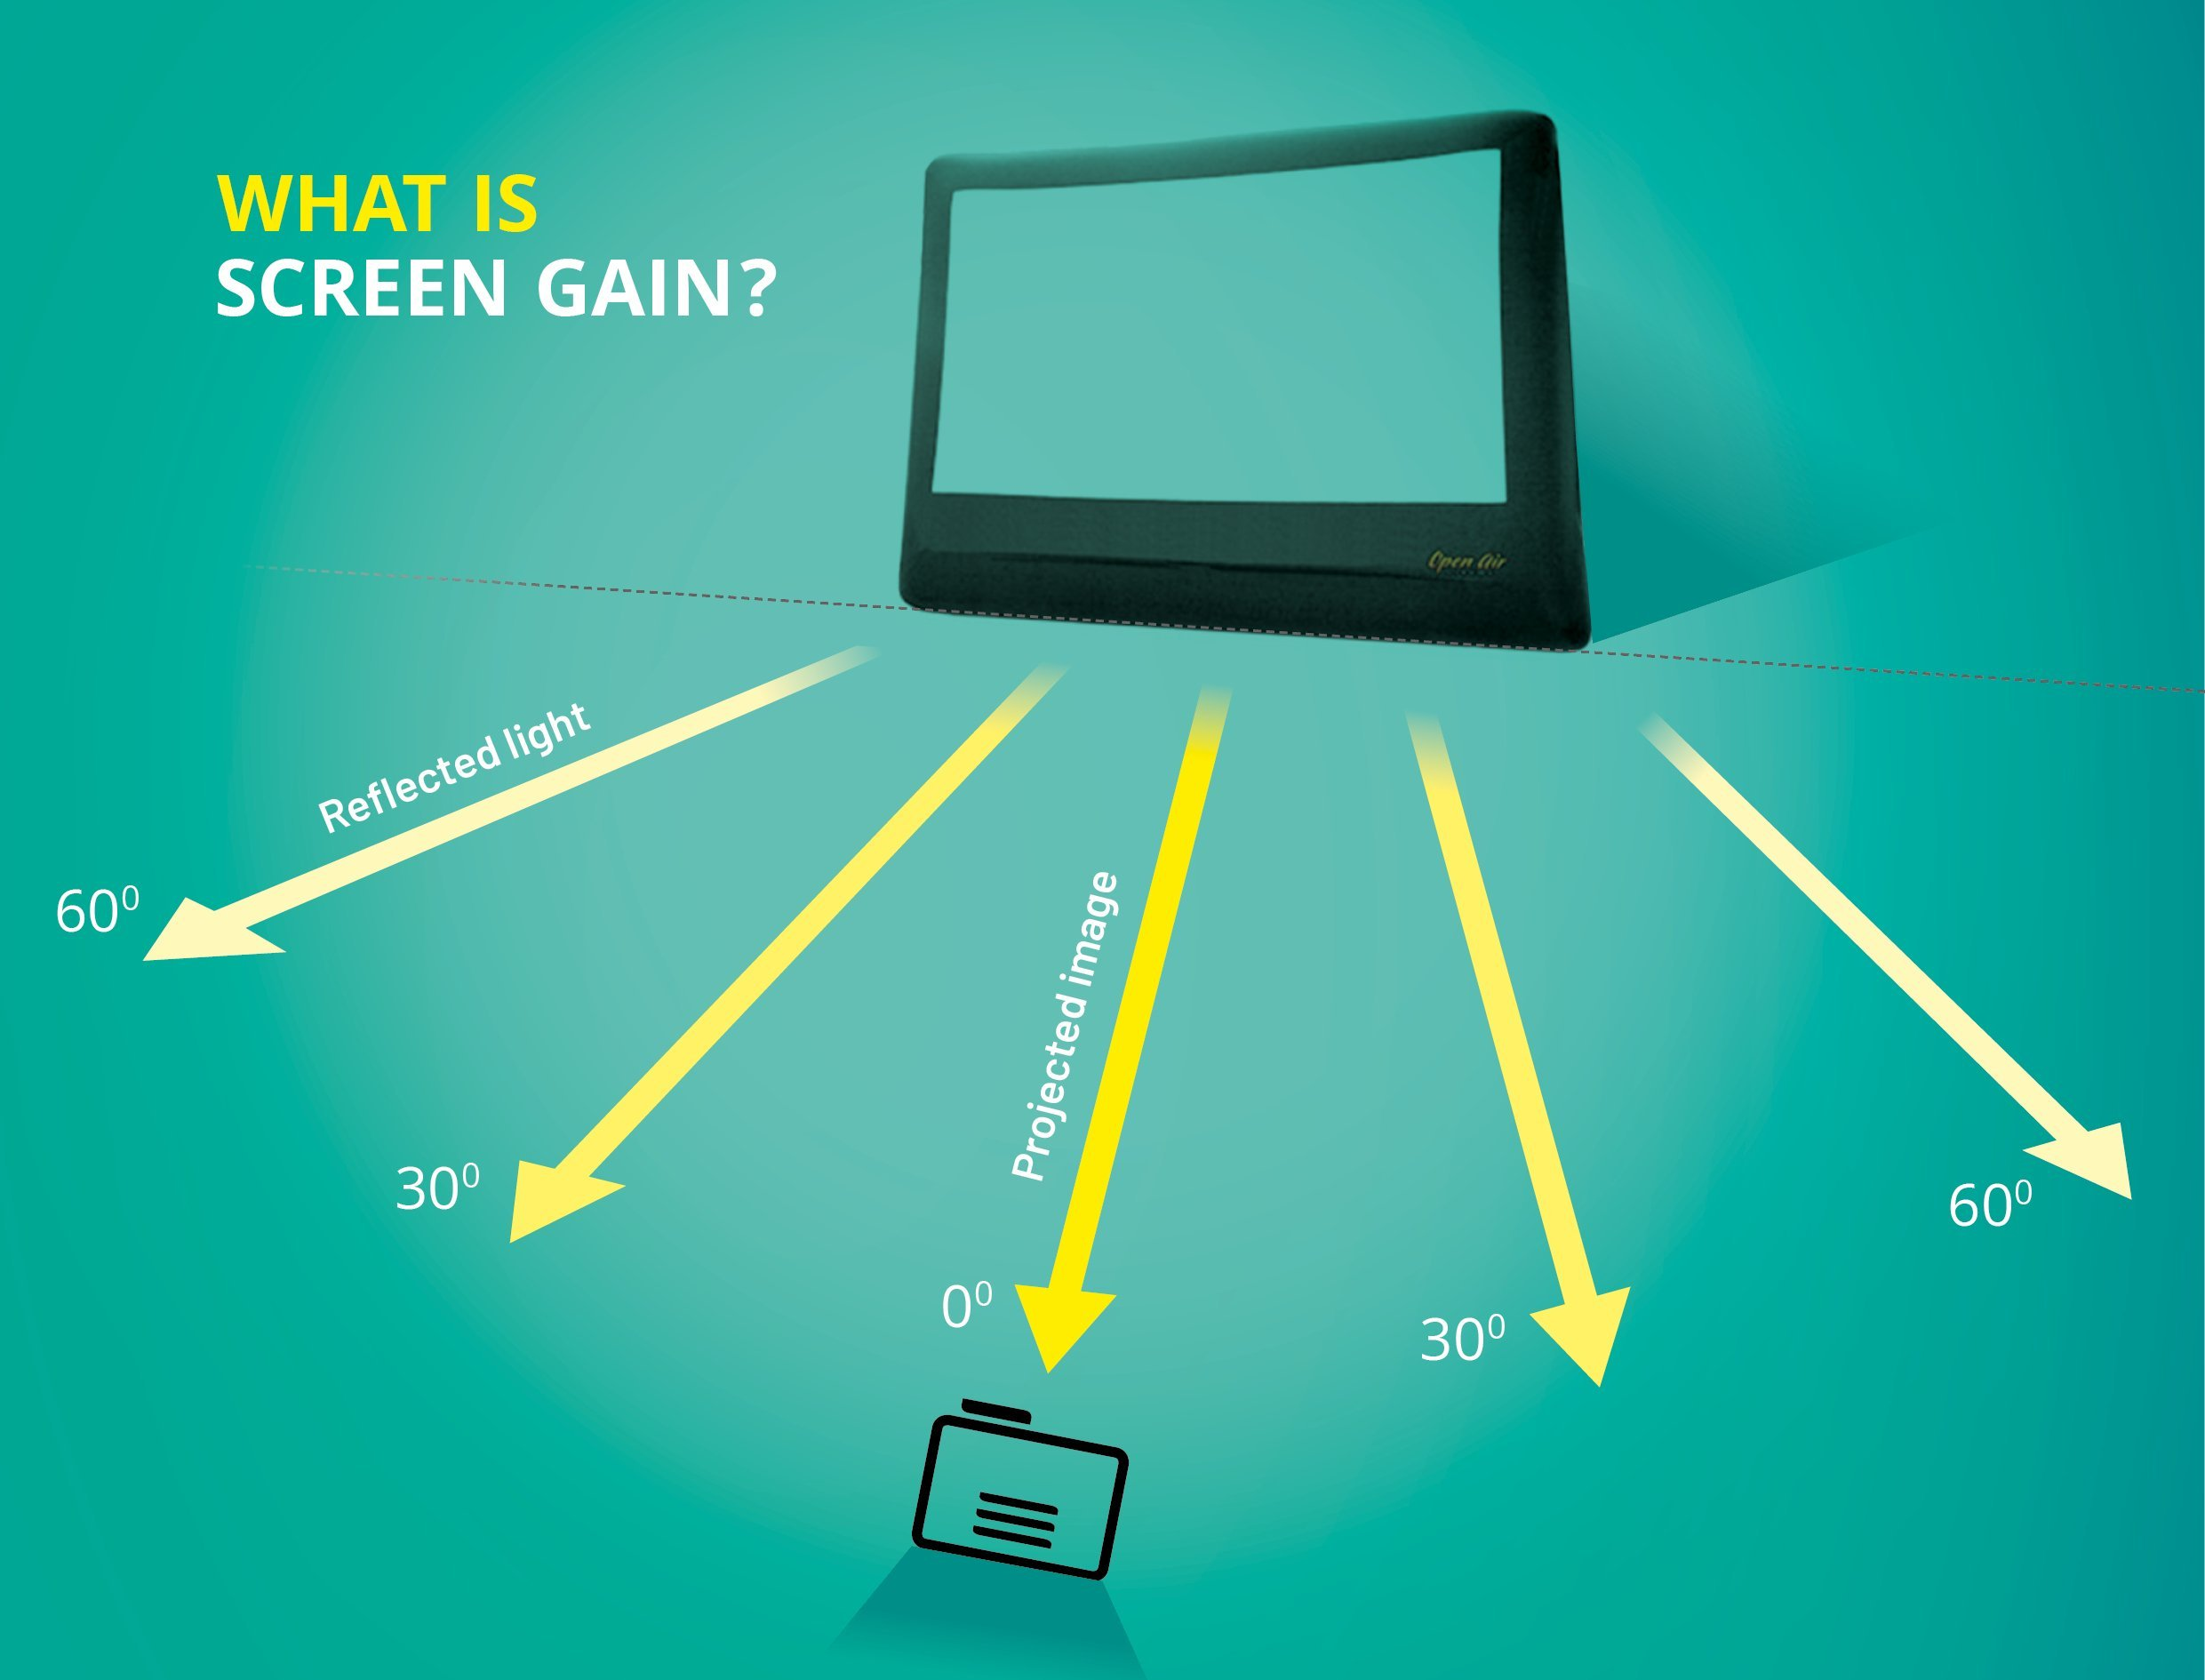 What is Screen gain?